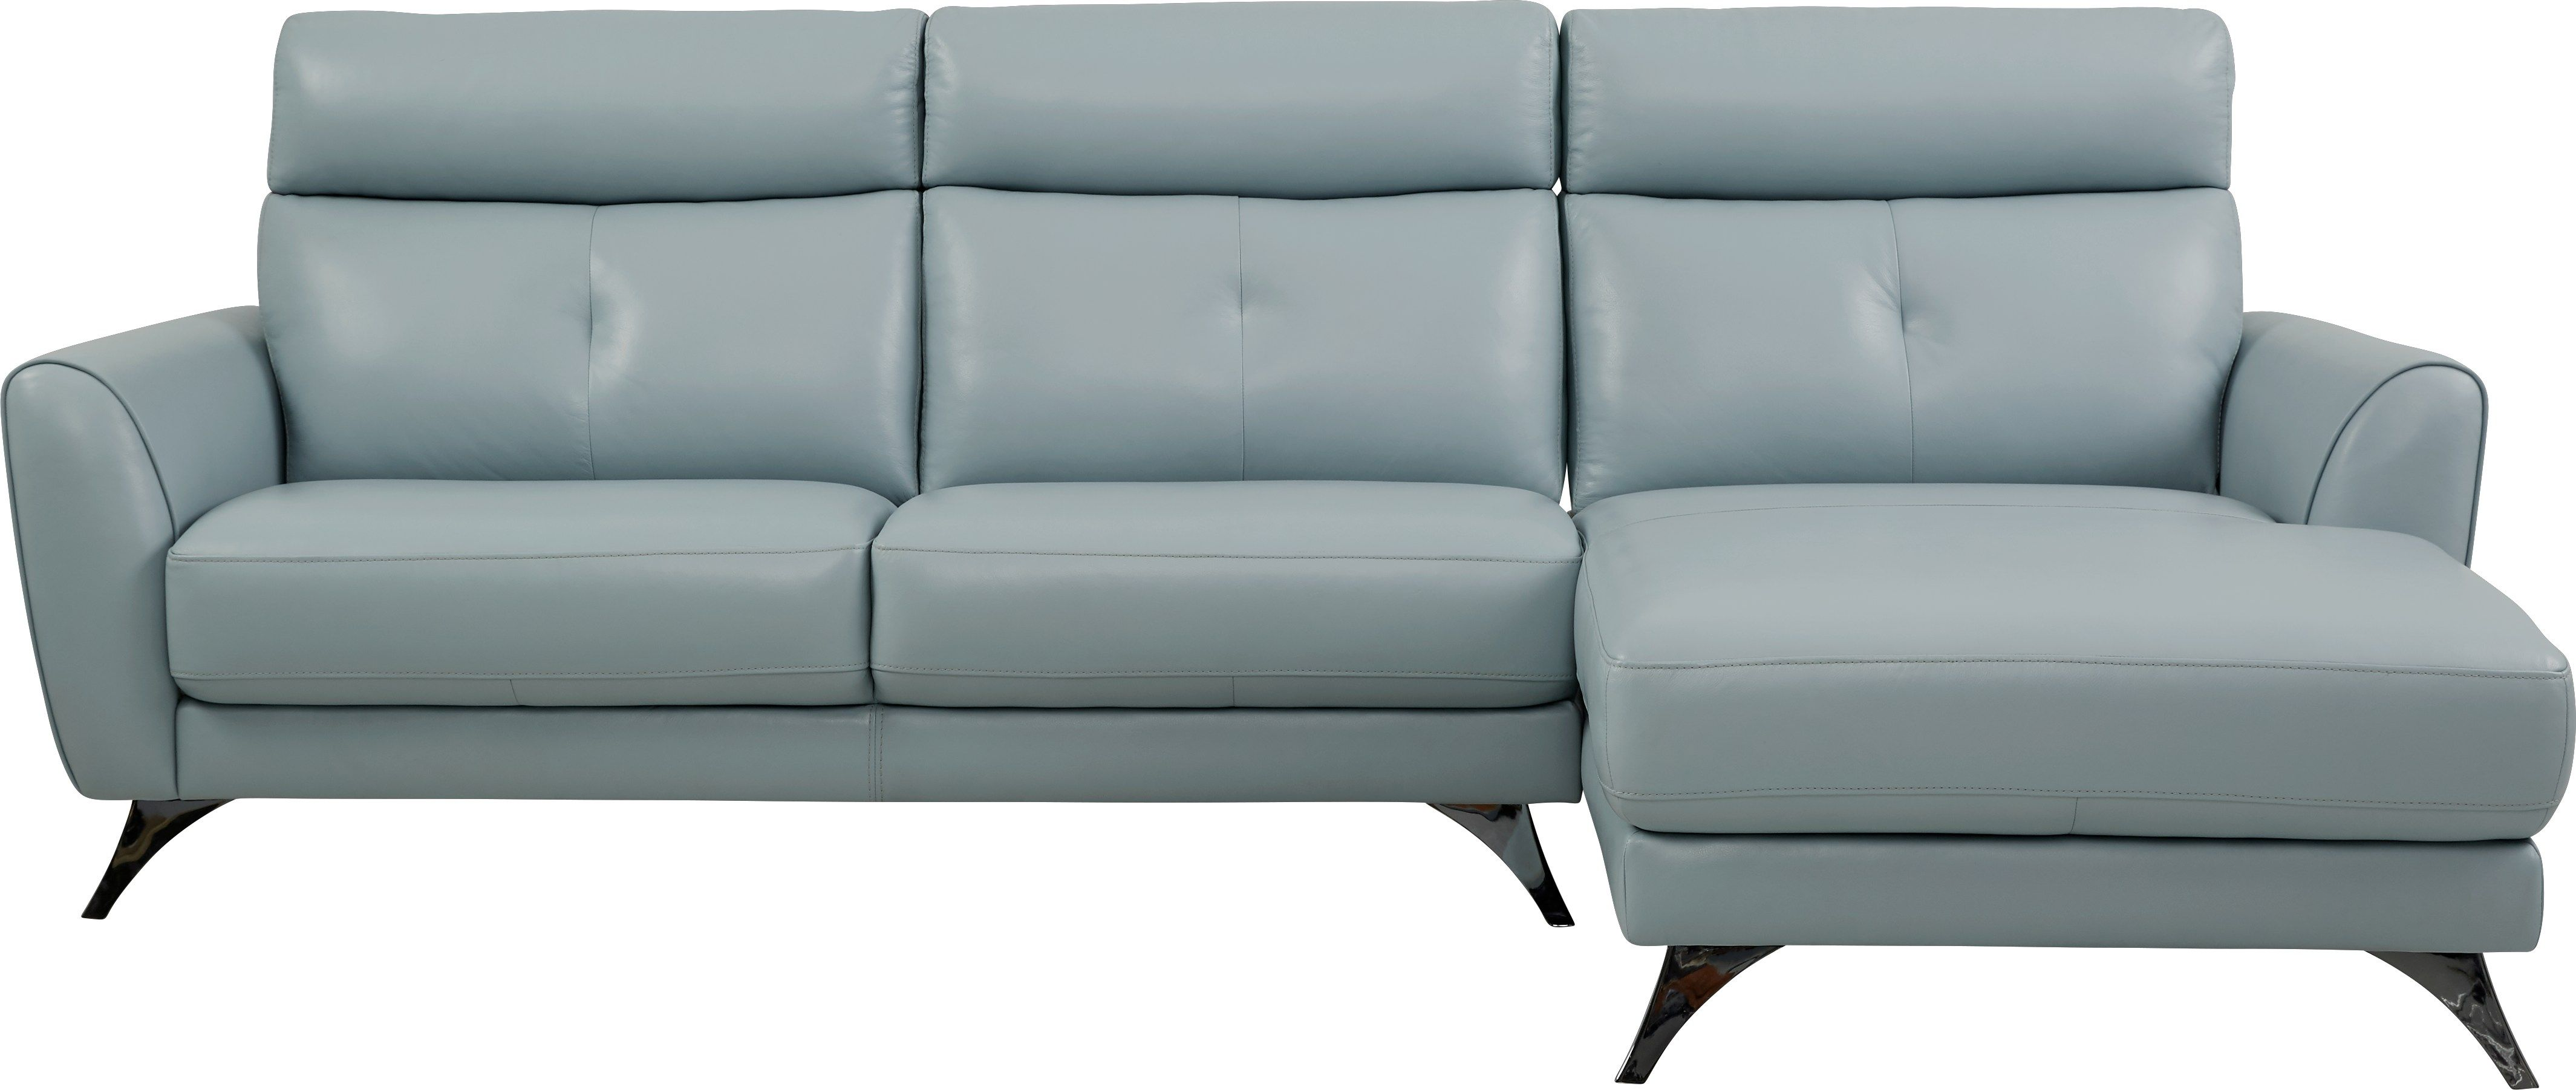 Modena Sky Blue Leather 2 Pc Sectional Living Room Leather Leather Furniture Blue Living Room